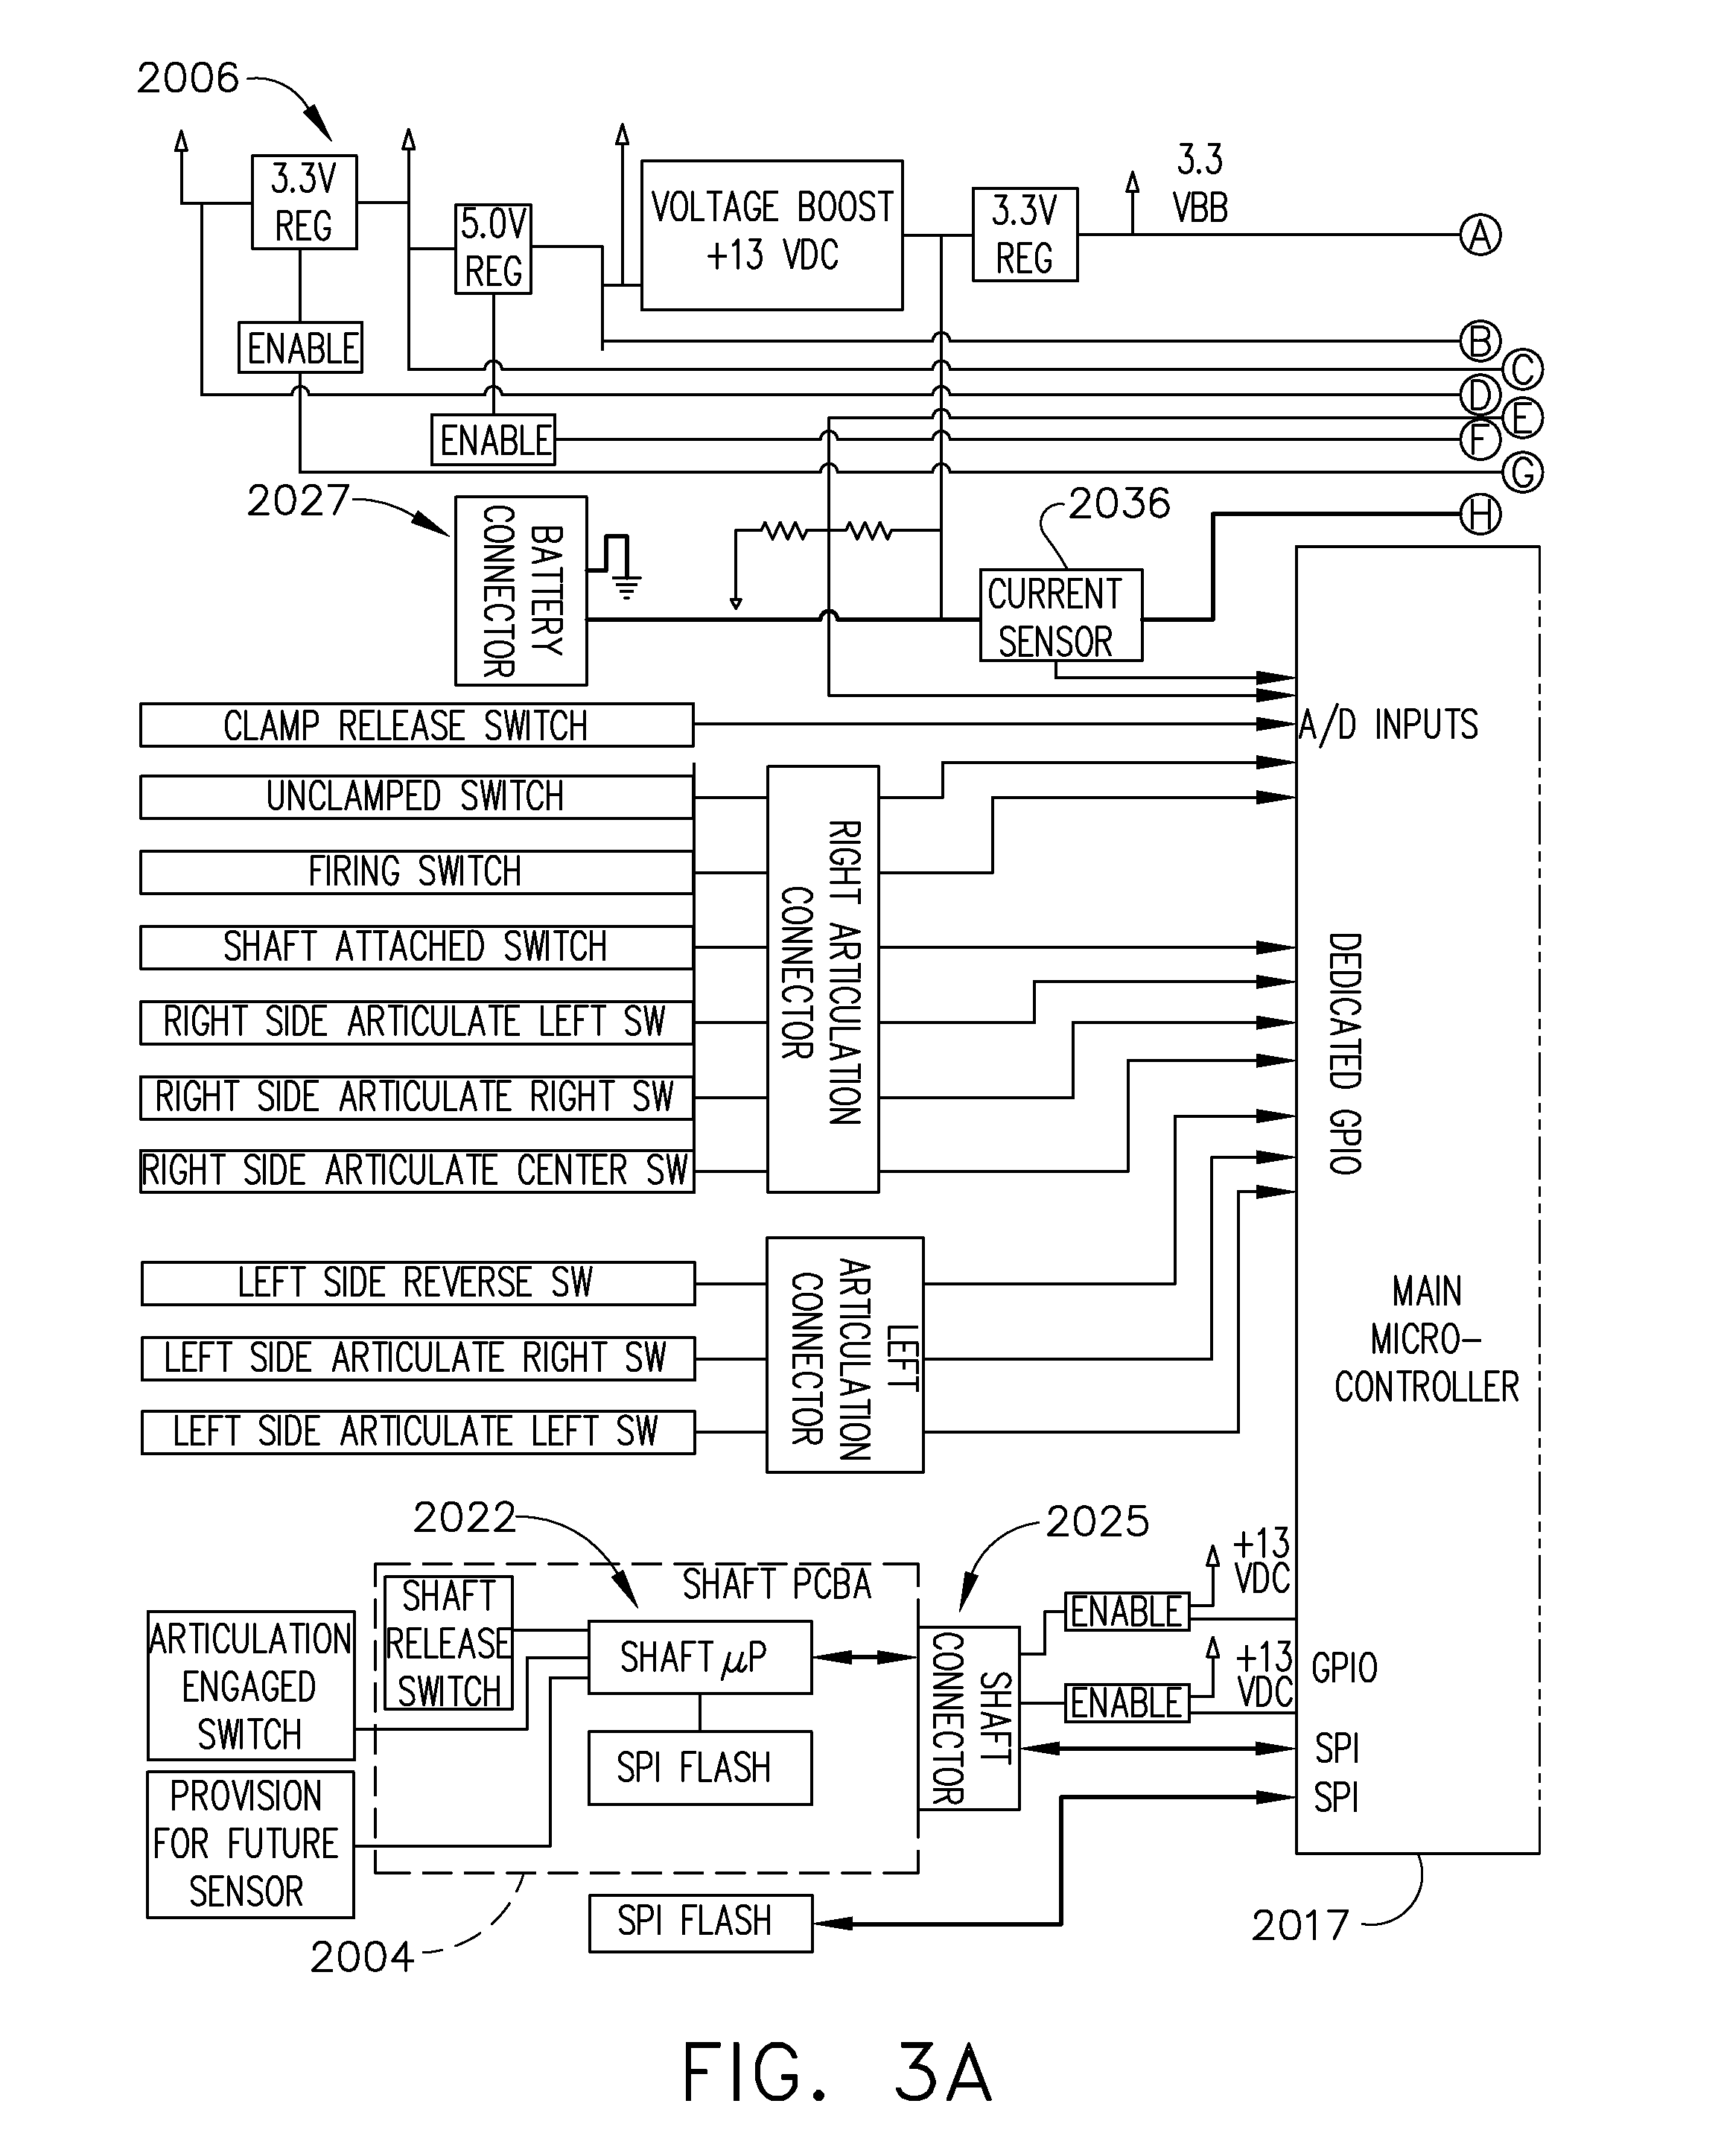 Detector Circuit Vibration Impulse Counter Water Switch Sensor Us9733663b2 Power Management Through Segmented And Variable Voltage Protection Google Patents